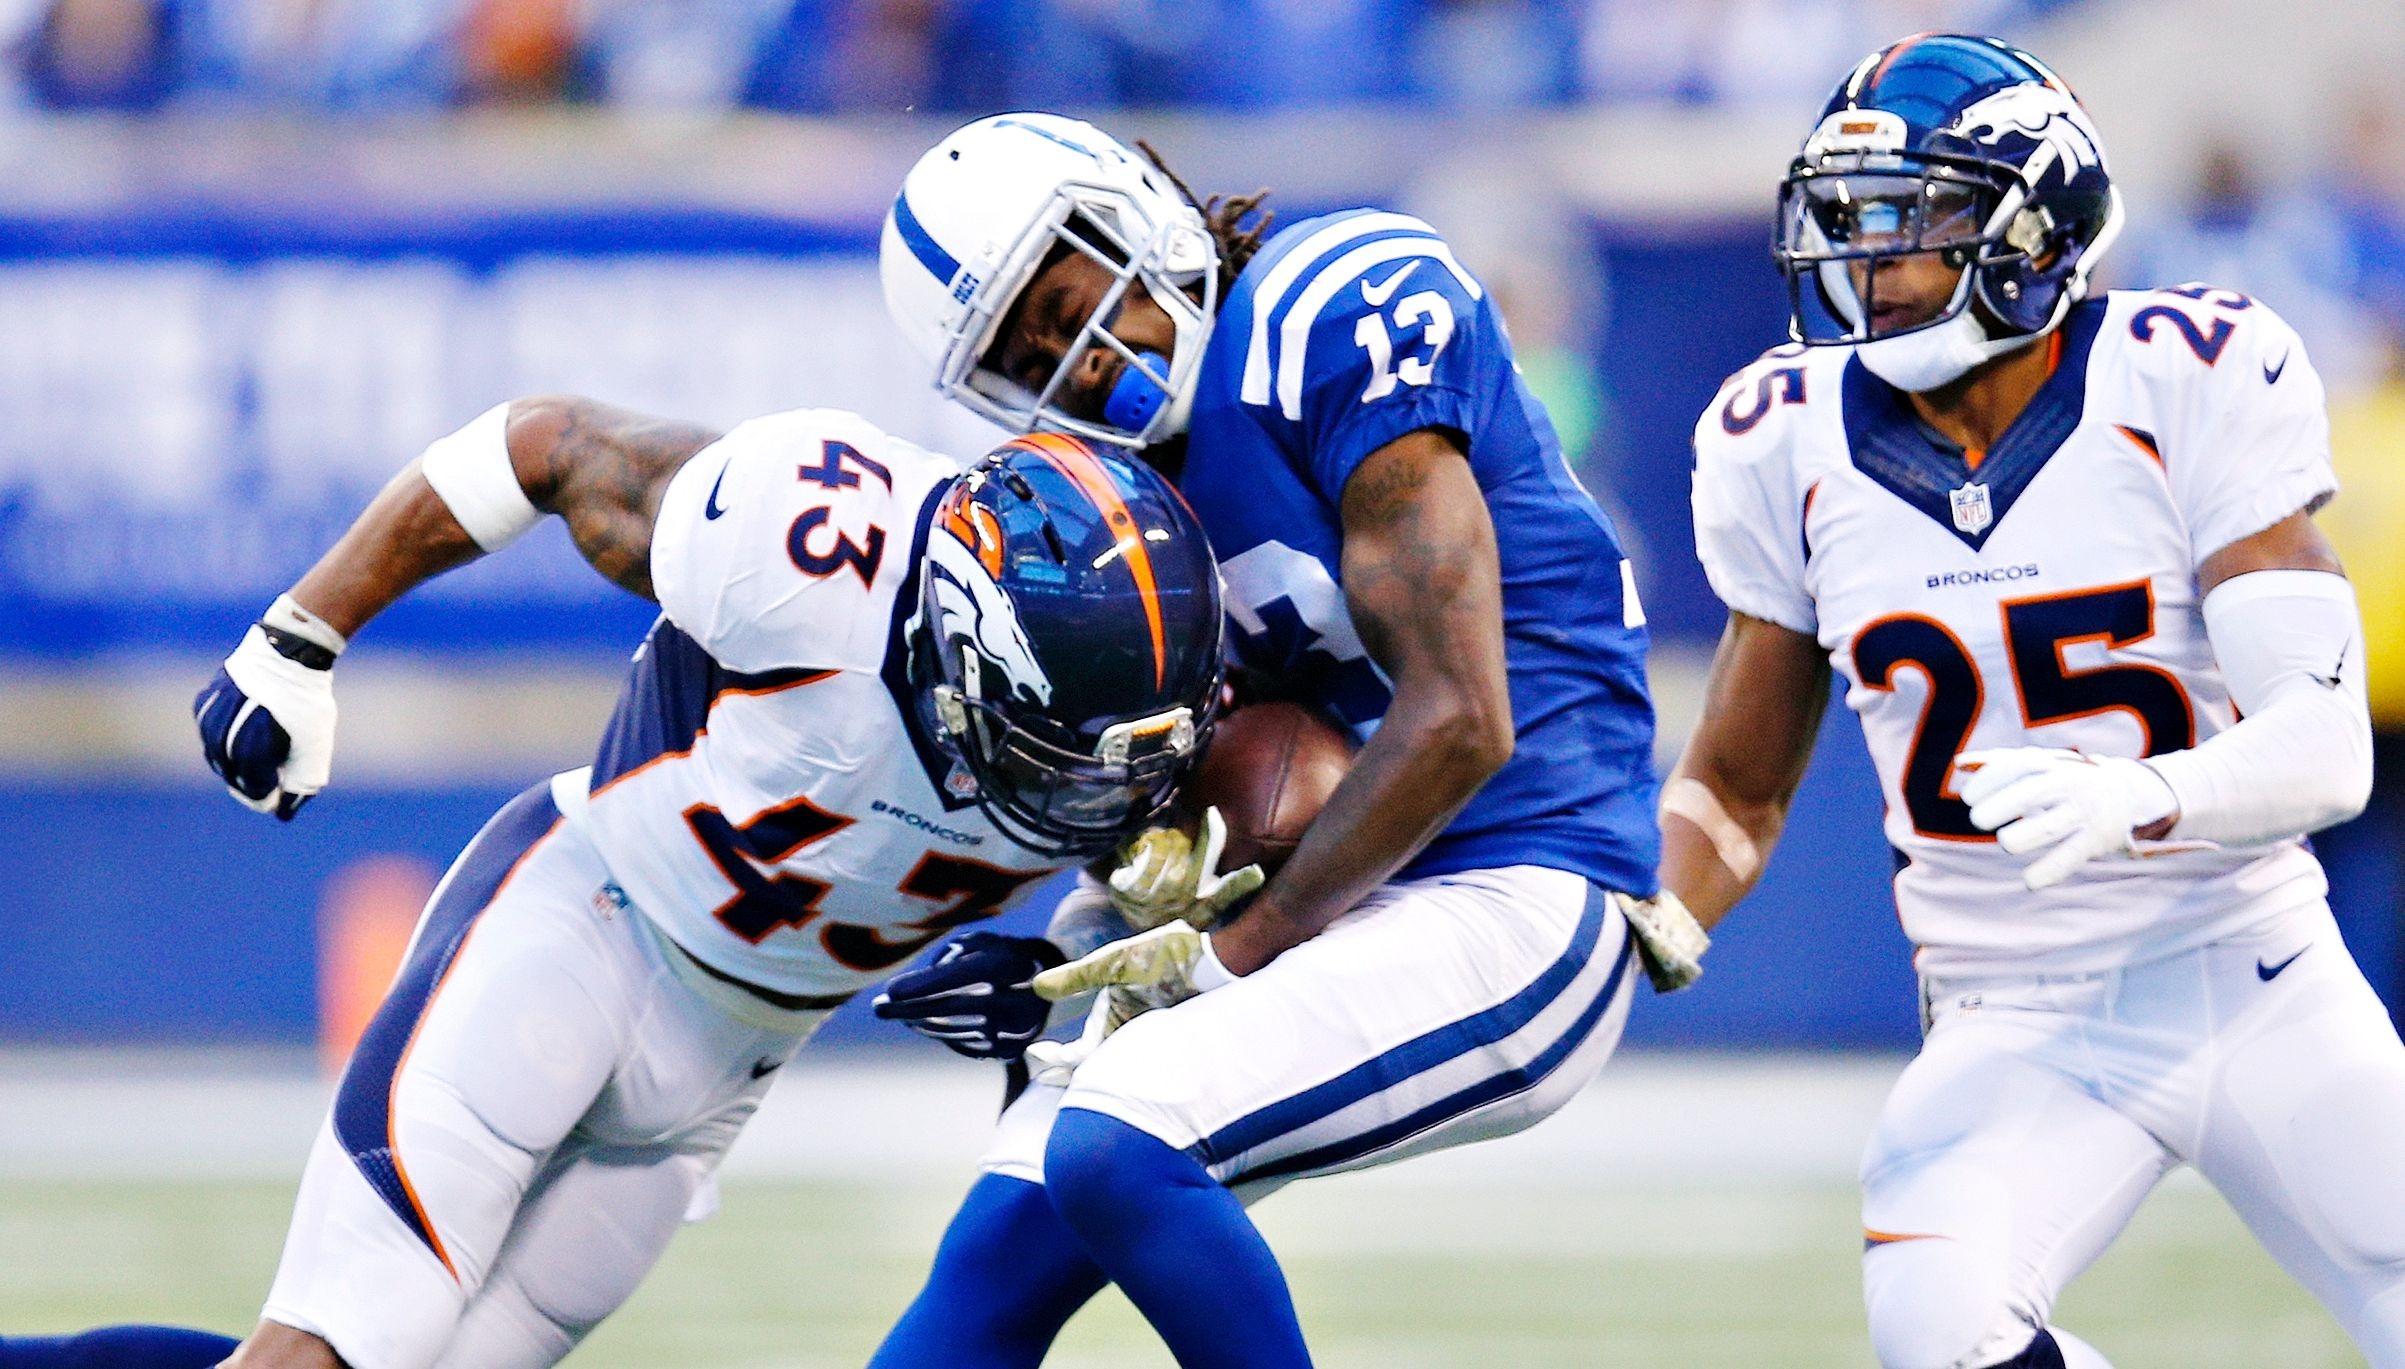 TJ Ward to the Colts Makes Too Much Sense Blue HQ Media